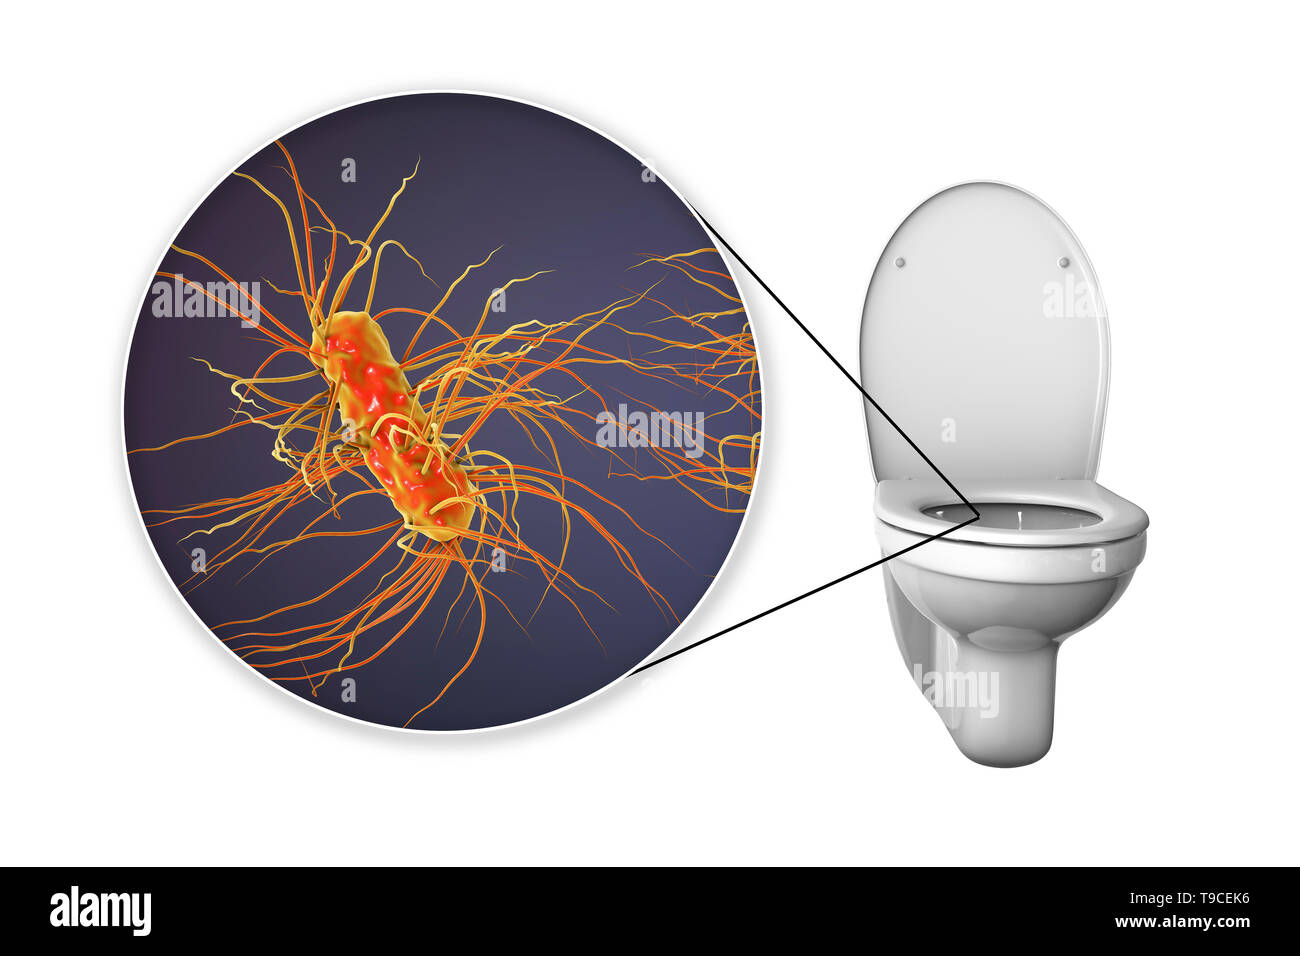 Toilet microbes, conceptual illustration - Stock Image